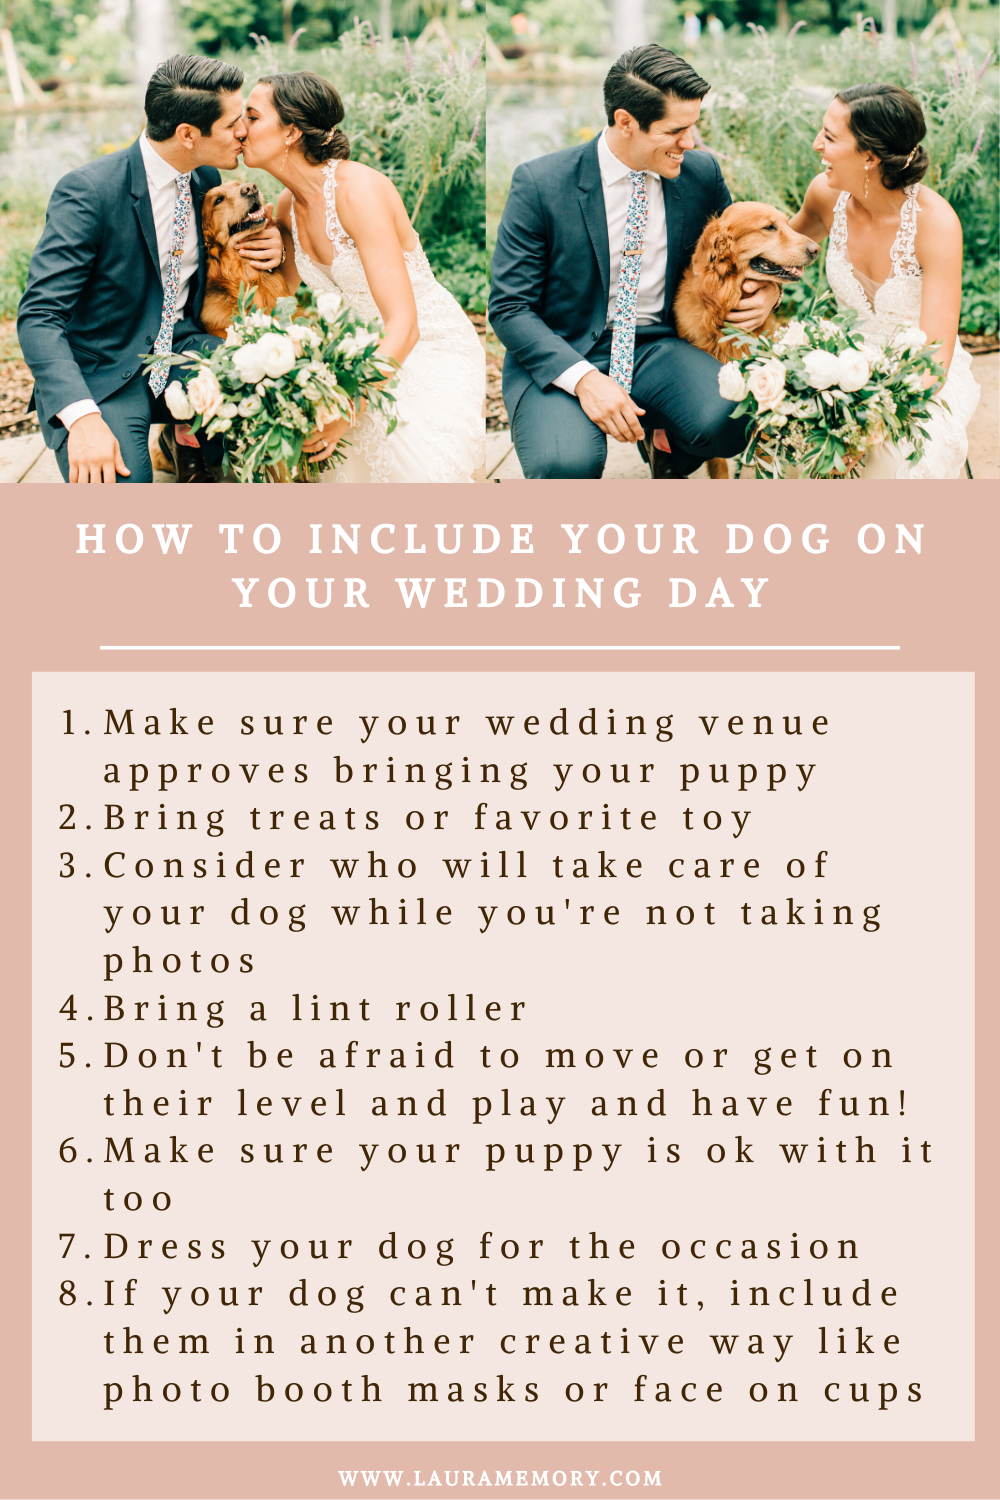 How to include my dog on my wedding day, wedding day photography with my dog